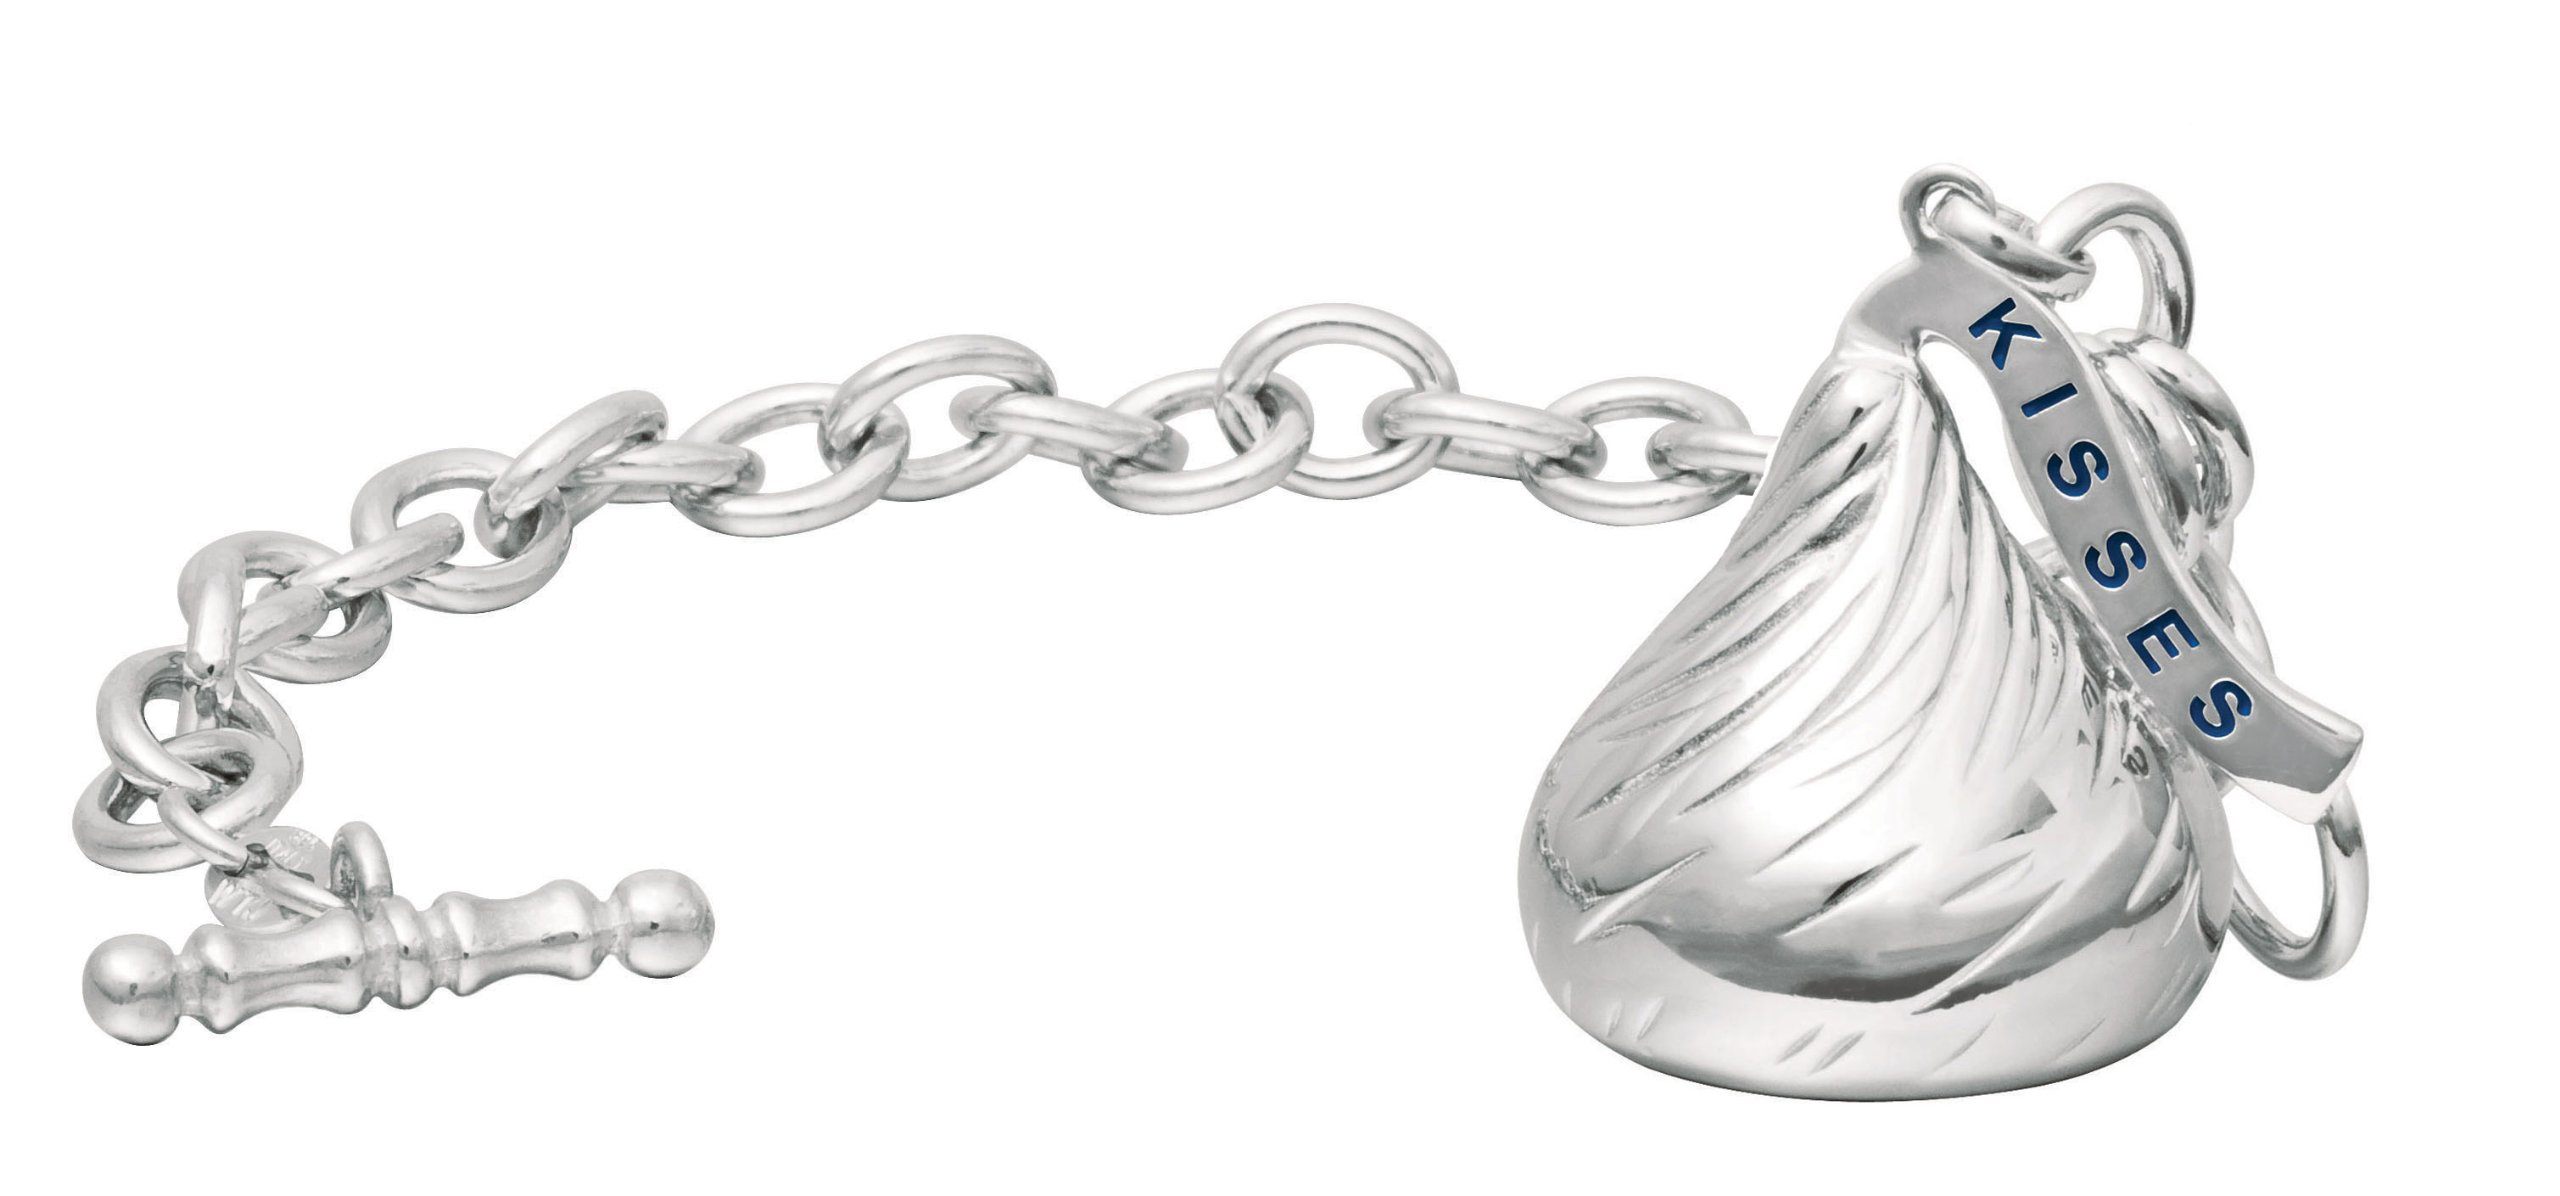 Hershey's Kiss Jewelry Sterling Silver Extra Large 3D Shaped Bracelet with One Hershey's Kiss Charm